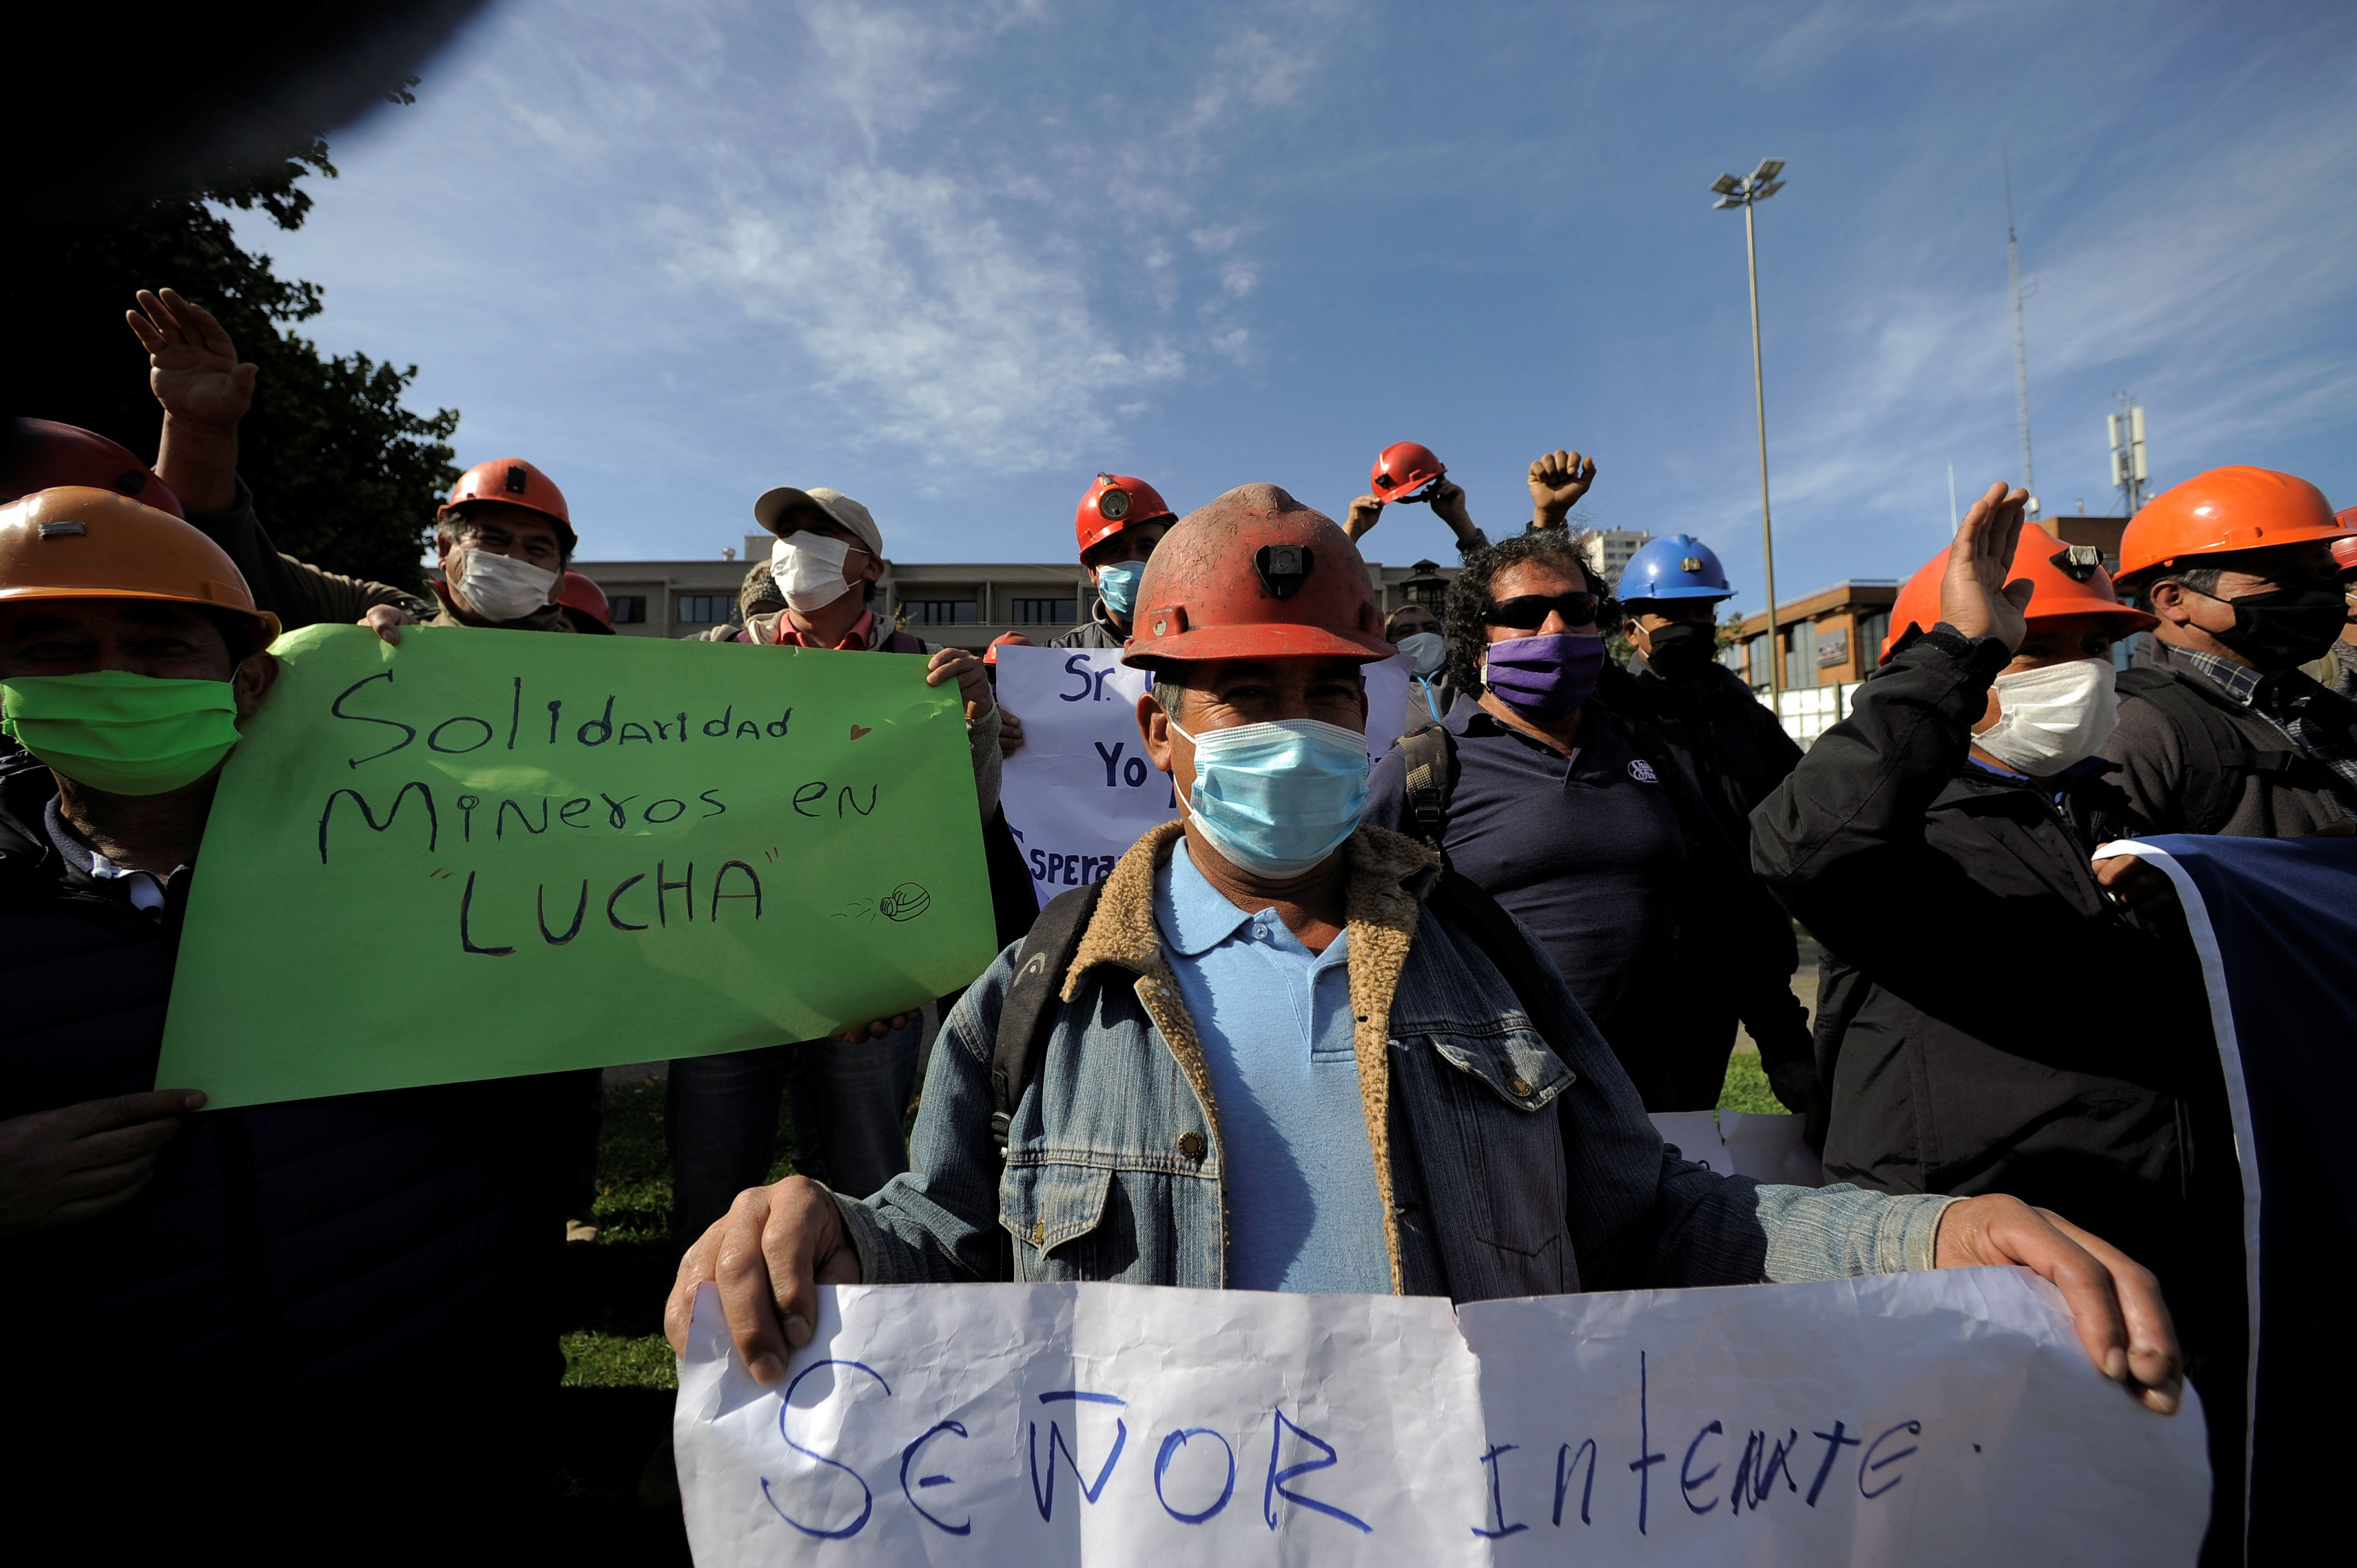 Coronavirus Politics Daily: Chile's miners in a jam, sexist attacks in Italy, climate summit postponed